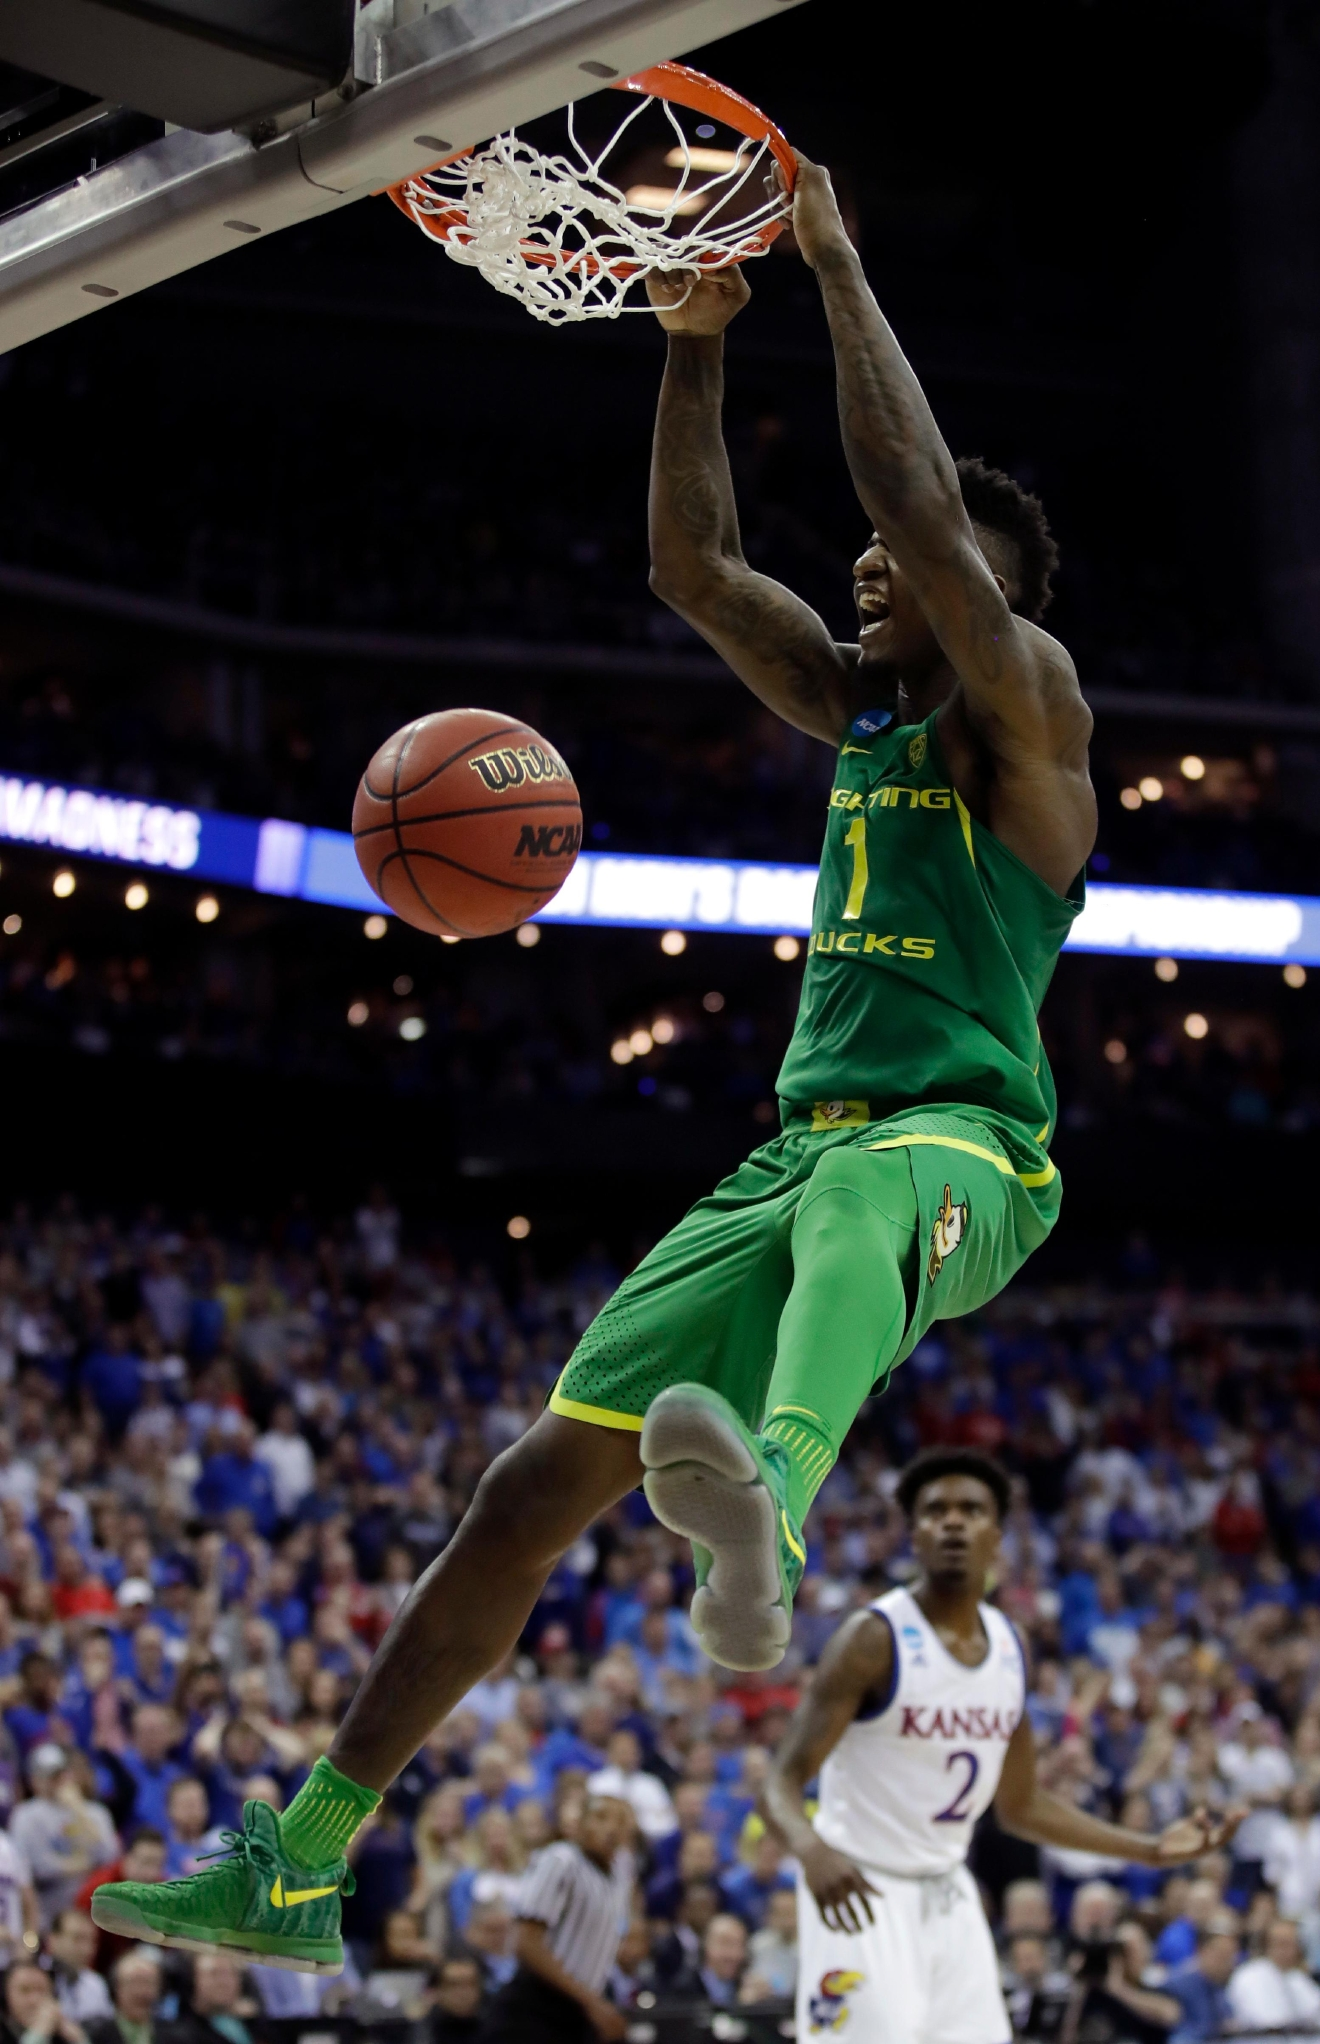 Oregon forward Jordan Bell dunks as Kansas guard Lagerald Vick (2) watches during the second half of the Midwest Regional final of the NCAA men's college basketball tournament, Saturday, March 25, 2017, in Kansas City, Mo. (AP Photo/Charlie Riedel)